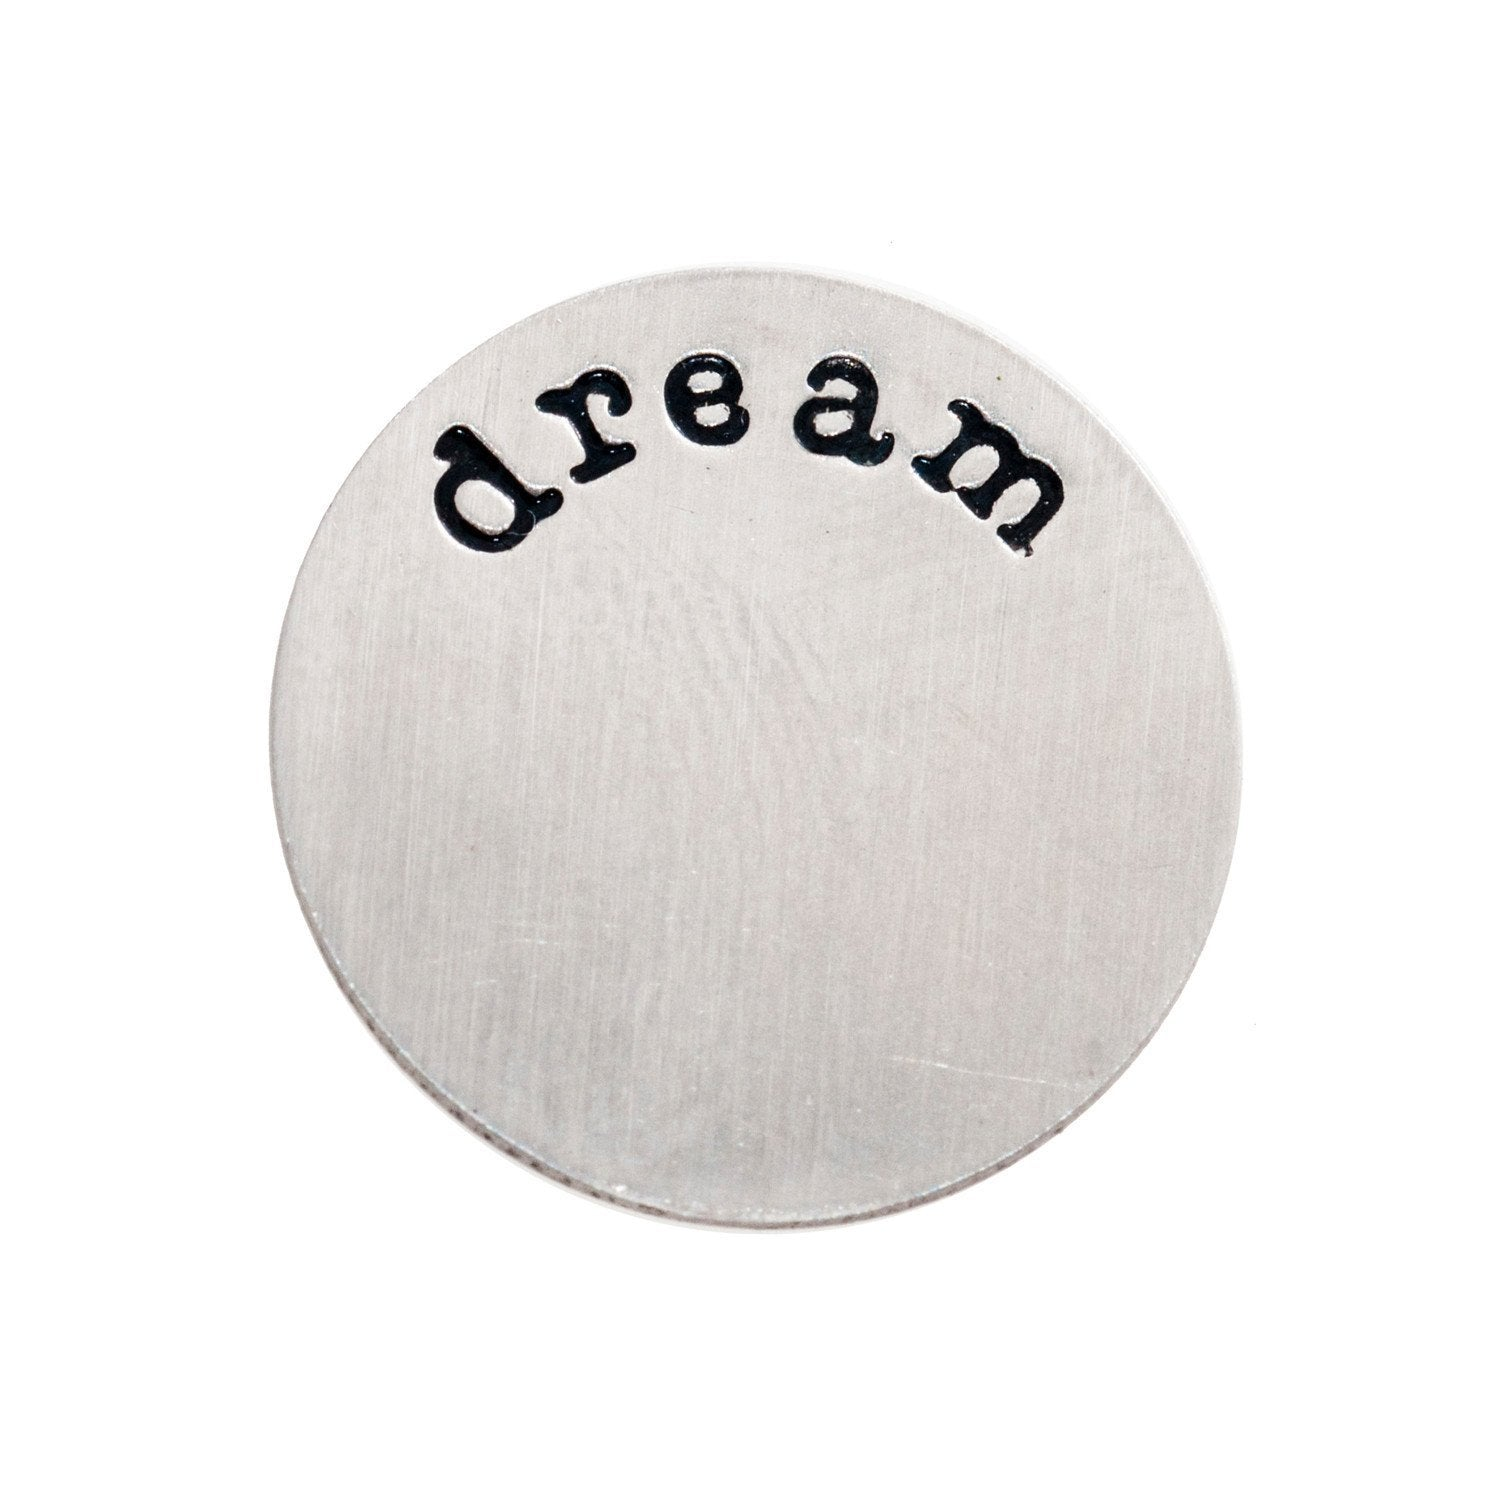 Back plate for use with medium Memory Lockets - 'Dream'